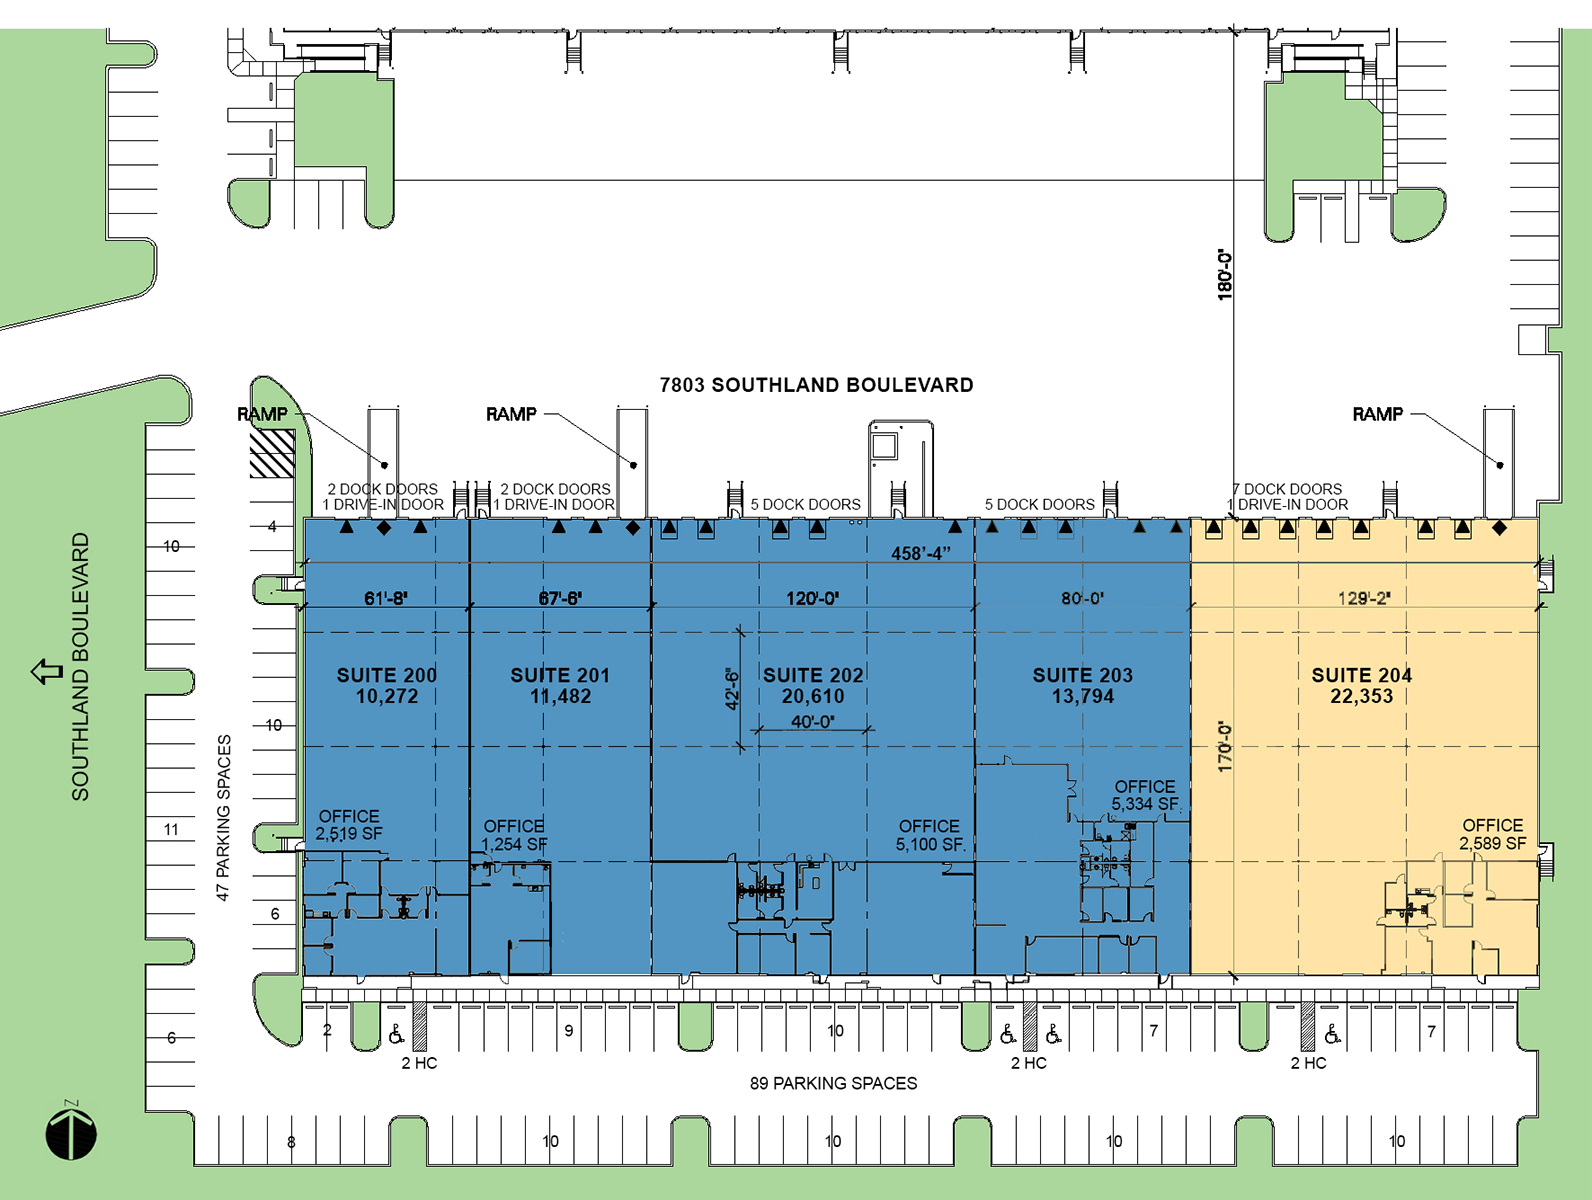 Prologis-Orlando-Corporate-Center_7803-Southland-Blvd_Flyer-Plan.jpg